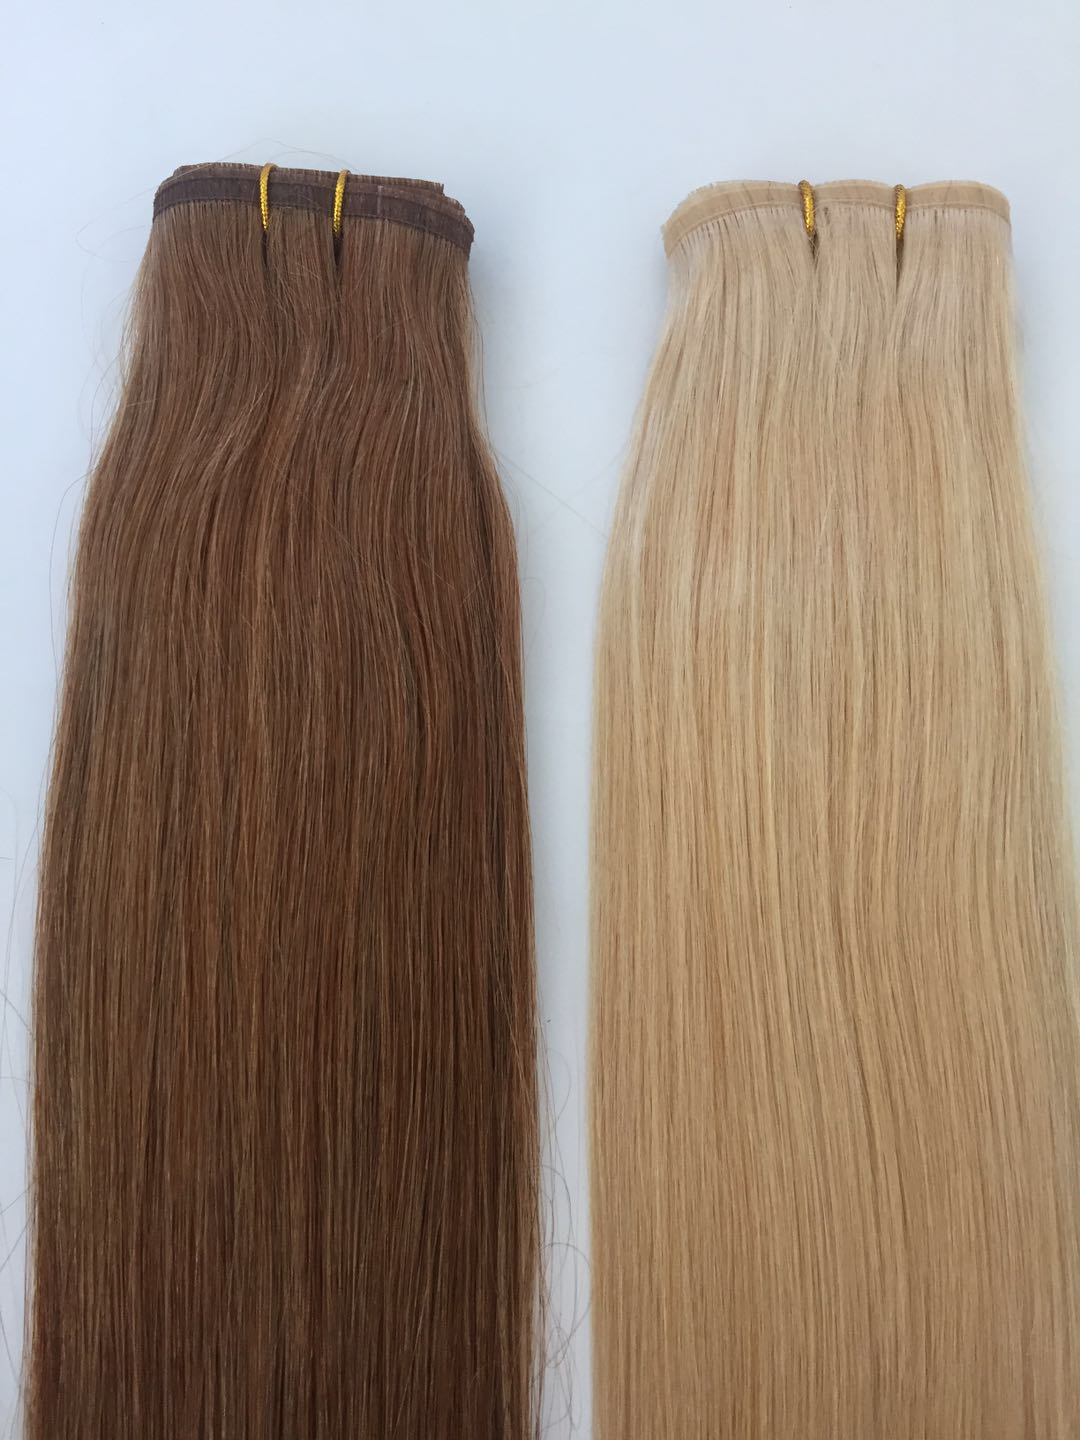 Double Drawn High Quality Cuticle Aligned Russian Remy Virgin Seamless Weft Hair Extensions manufactuers in China QM191